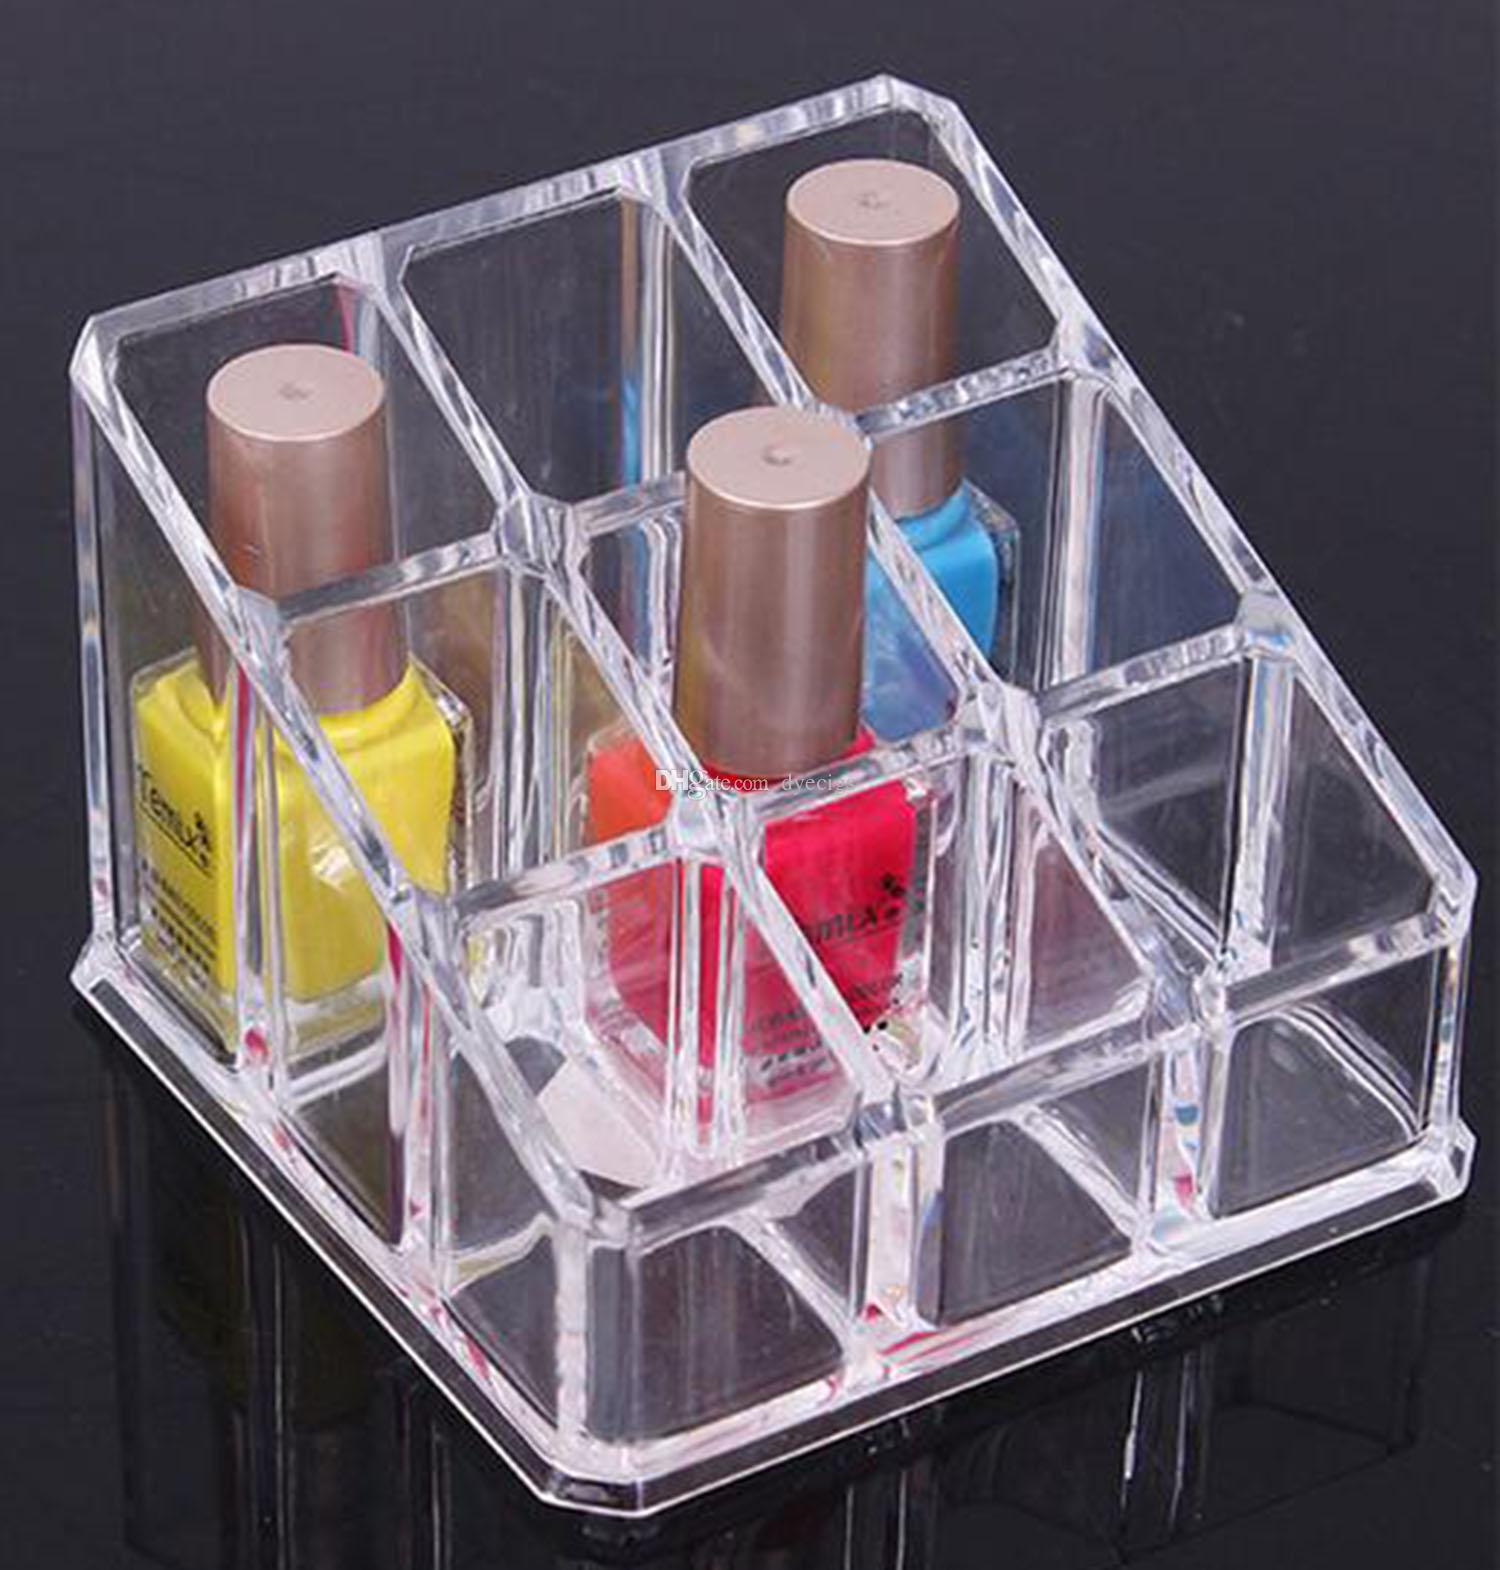 lipstick organizer nail polish makeup case cosmetic stand display rack holder makeup train case office storage from dyecigs 573 dhgatecom